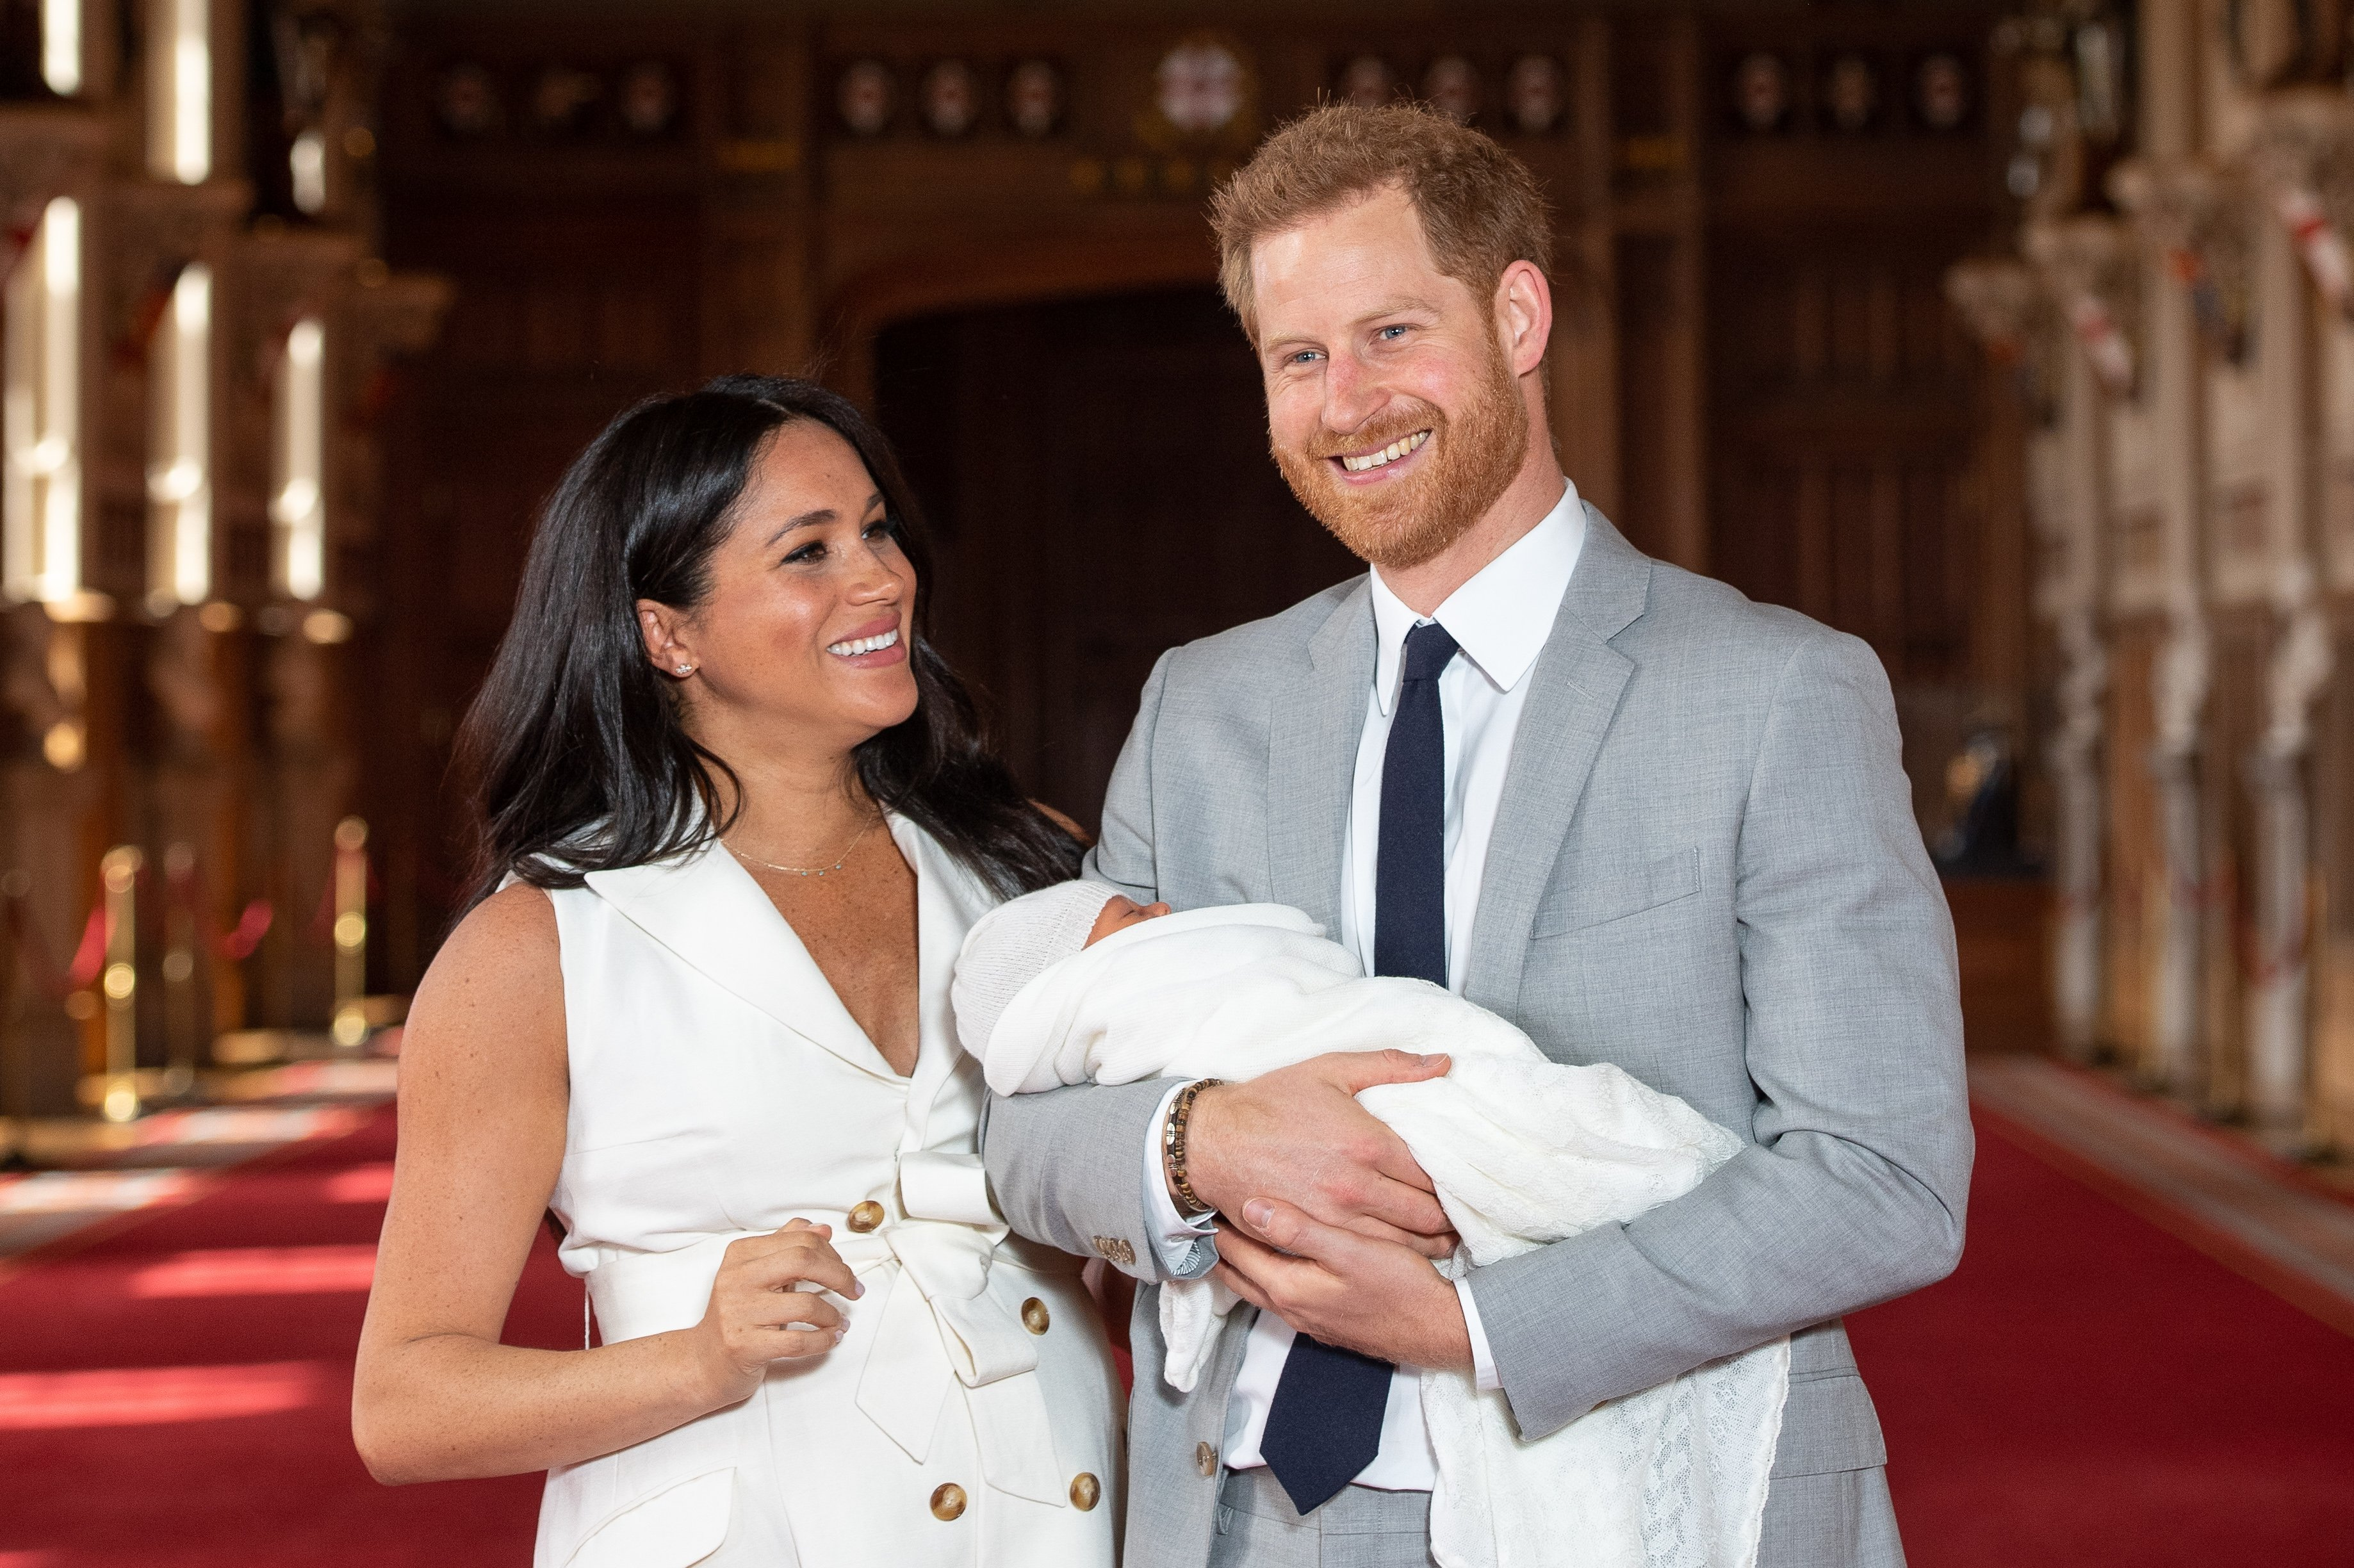 Prince Harry and Duchess Meghan pose with their newborn son Archie Harrison Mountbatten-Windsor during a photocall in St George's Hall at Windsor Castle on May 8, 2019 in Windsor, England | Photo: Getty Images